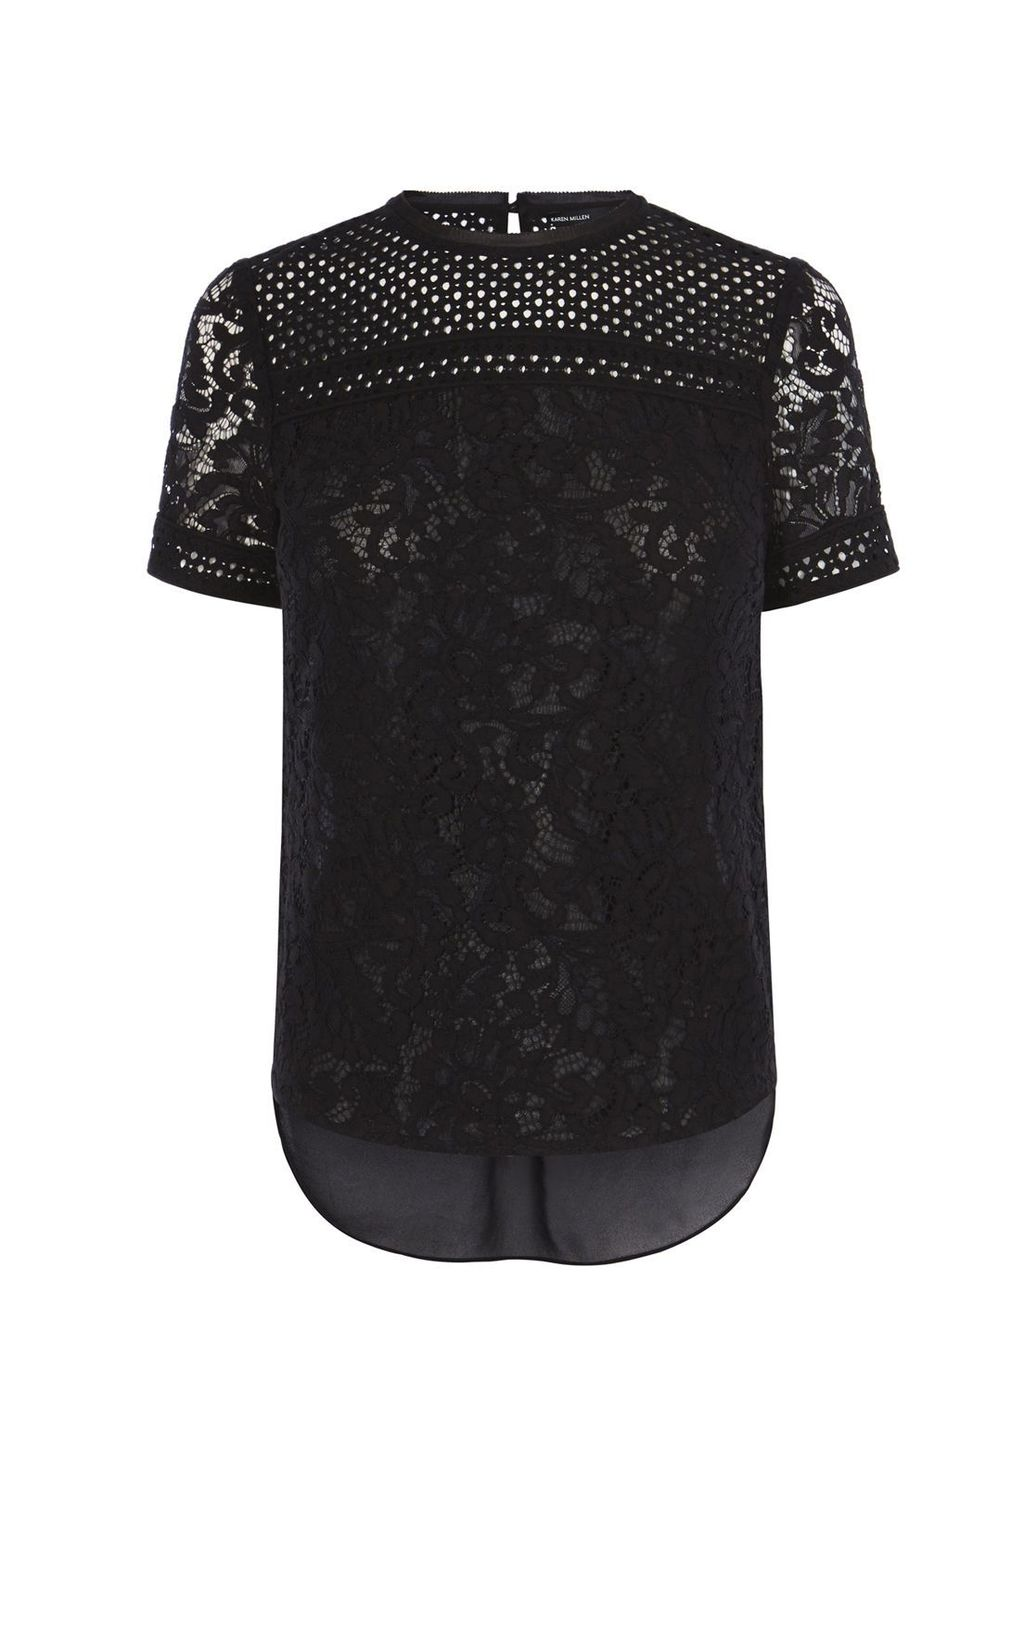 Lace Panel T Shirt, Black - style: t-shirt; predominant colour: black; occasions: evening; length: standard; fibres: polyester/polyamide - mix; fit: body skimming; neckline: crew; sleeve length: short sleeve; sleeve style: standard; texture group: lace; pattern type: fabric; pattern size: standard; pattern: patterned/print; season: s/s 2016; wardrobe: event